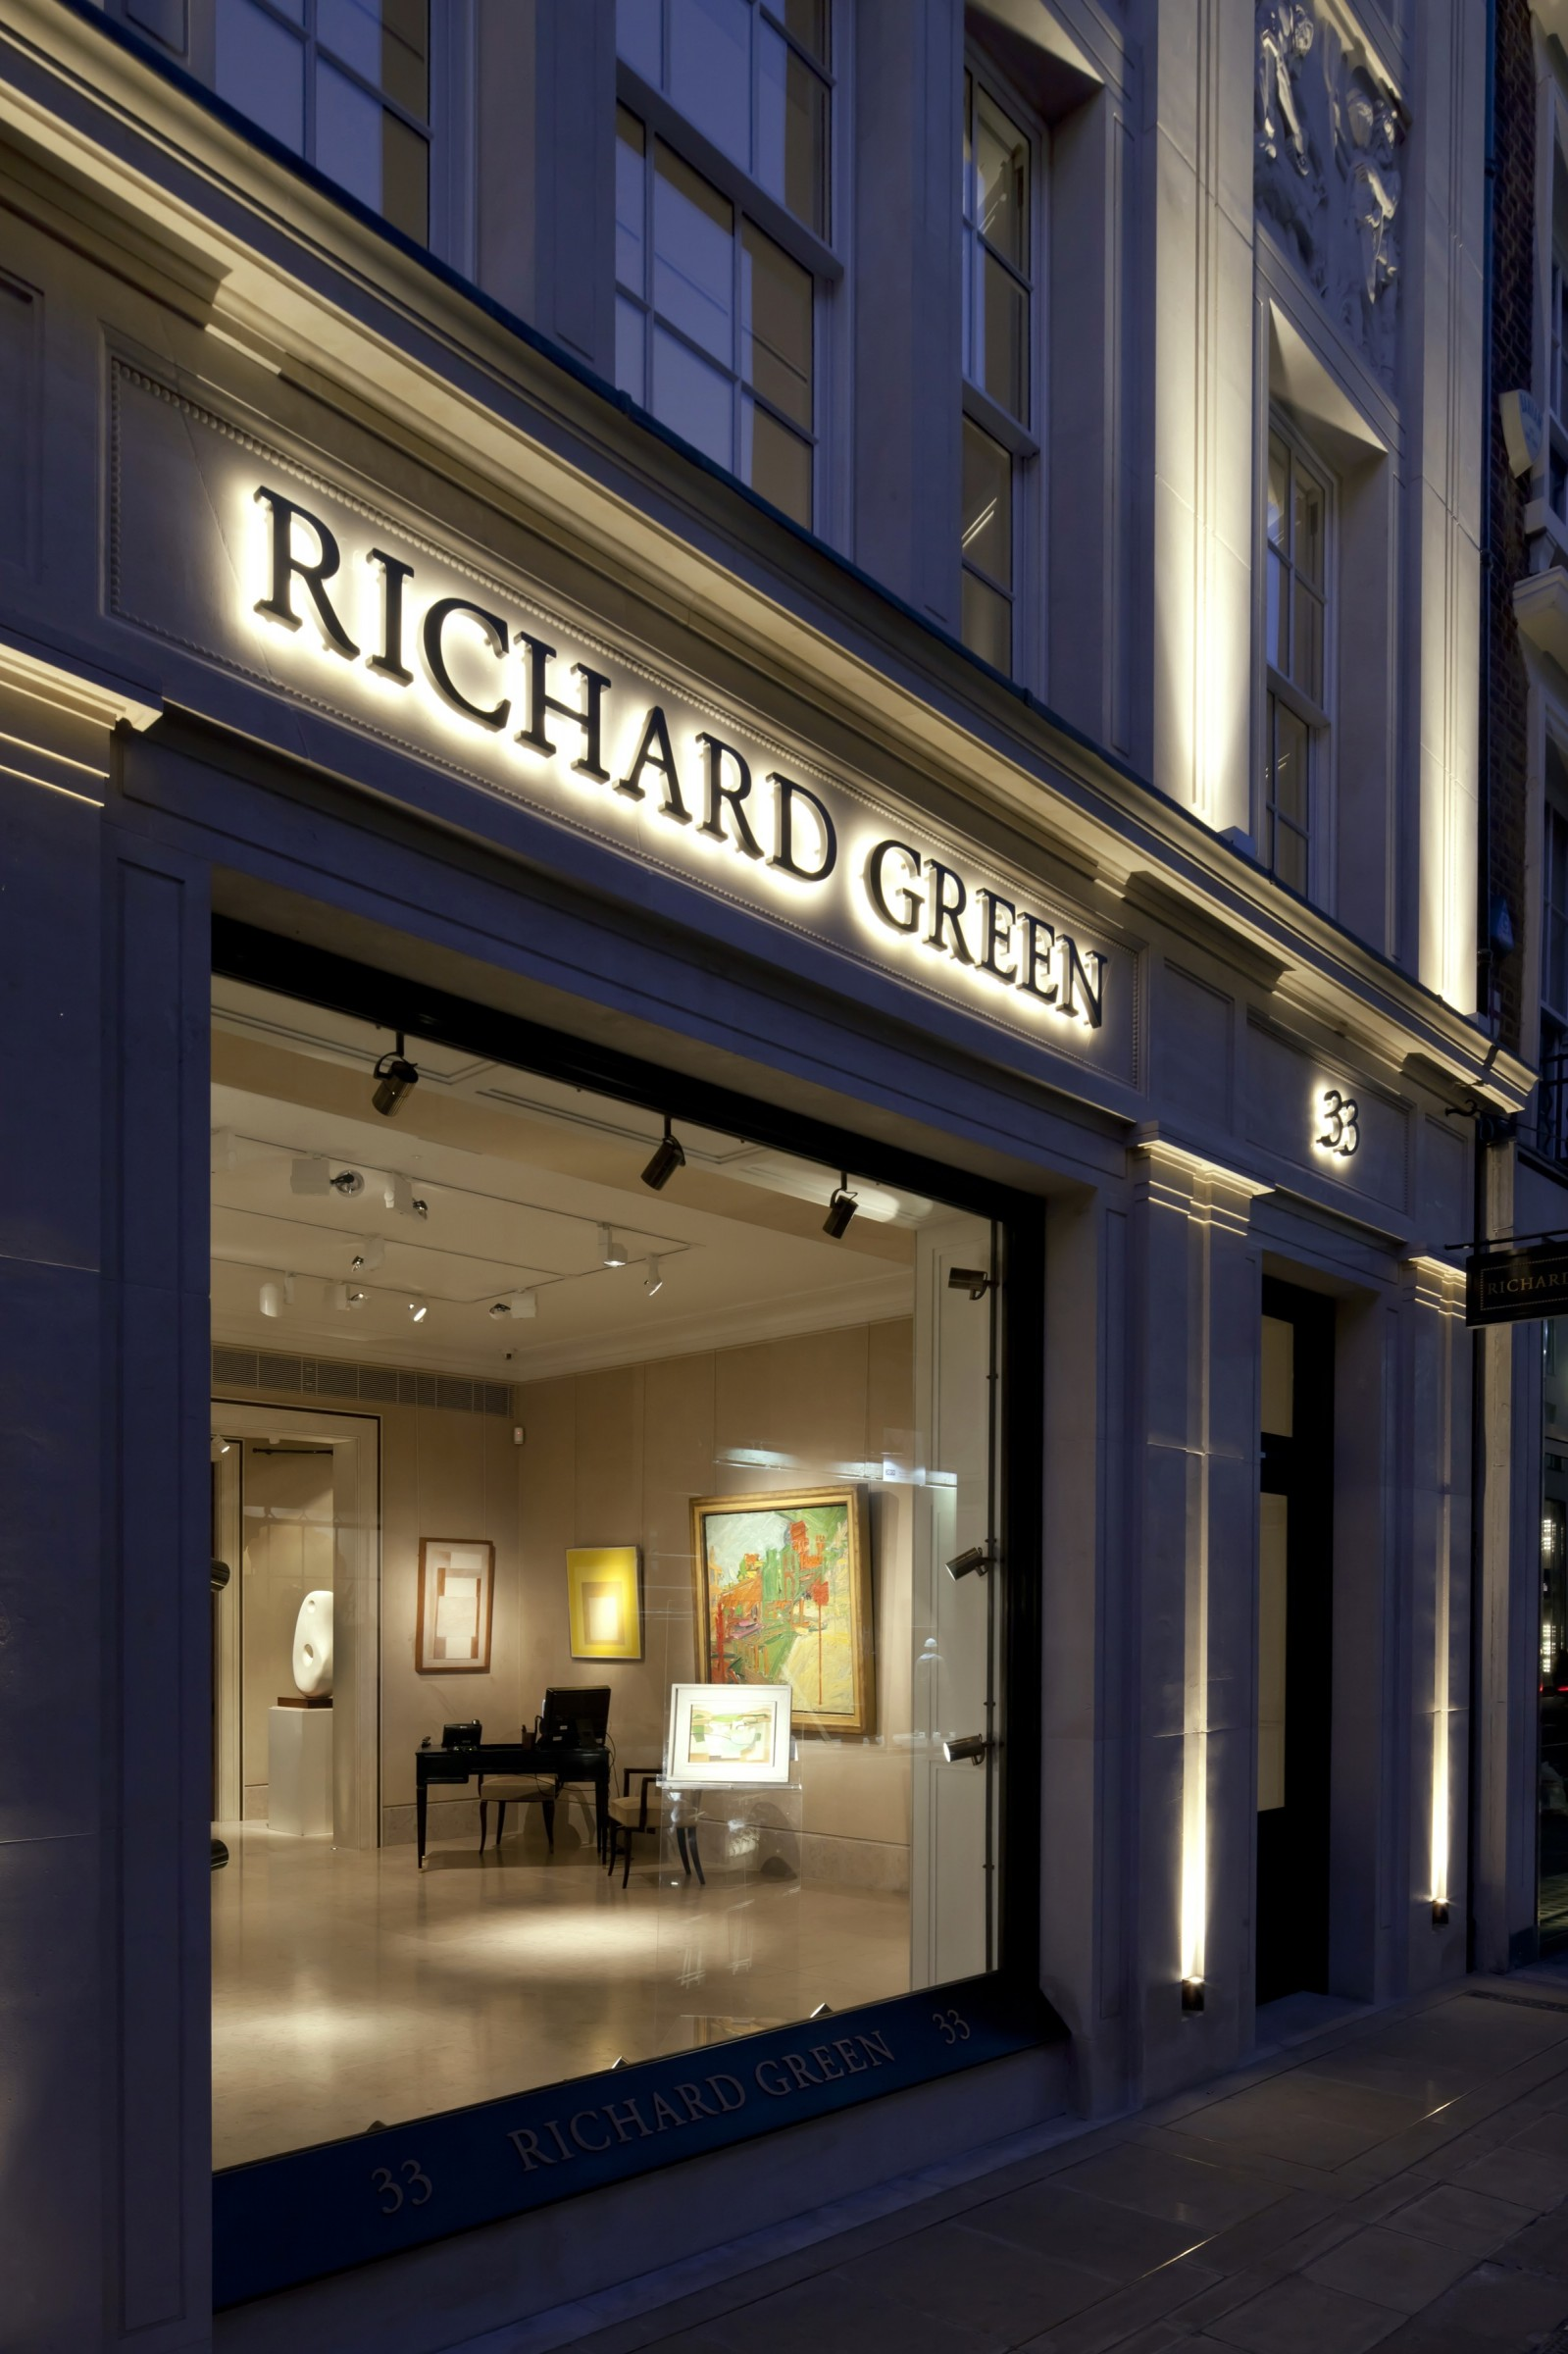 Richard Green Gallery, New Bond Street, London